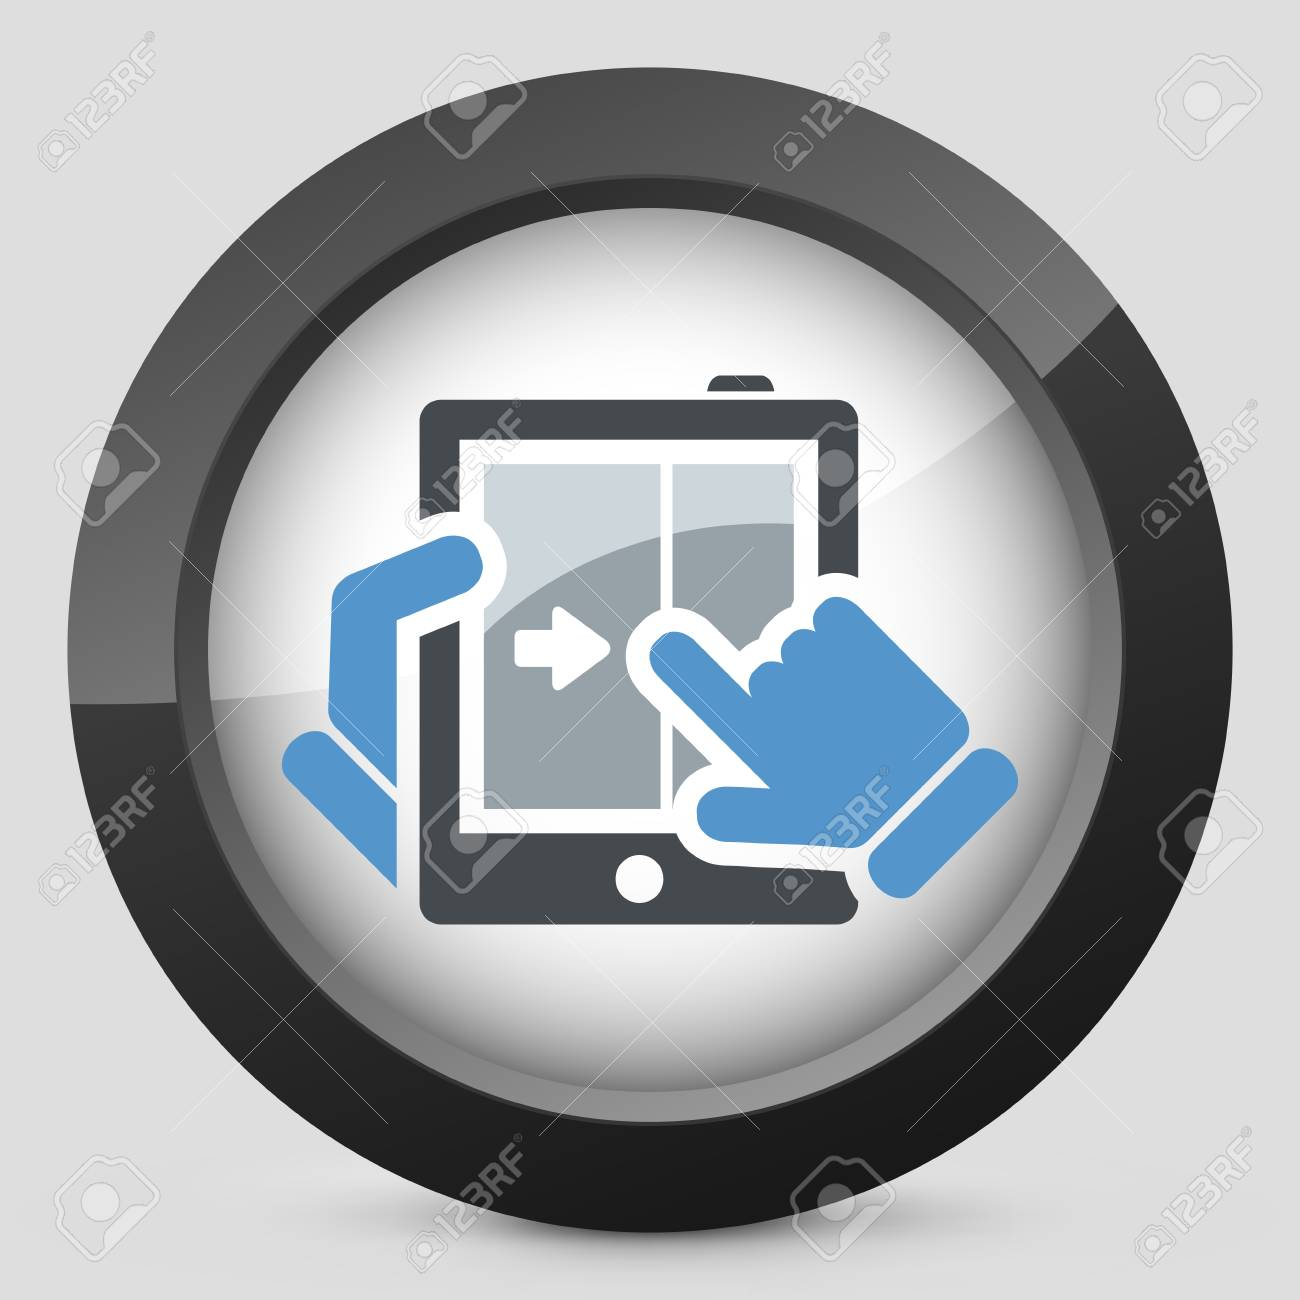 Touchscreen sliding icon Stock Vector - 20084298